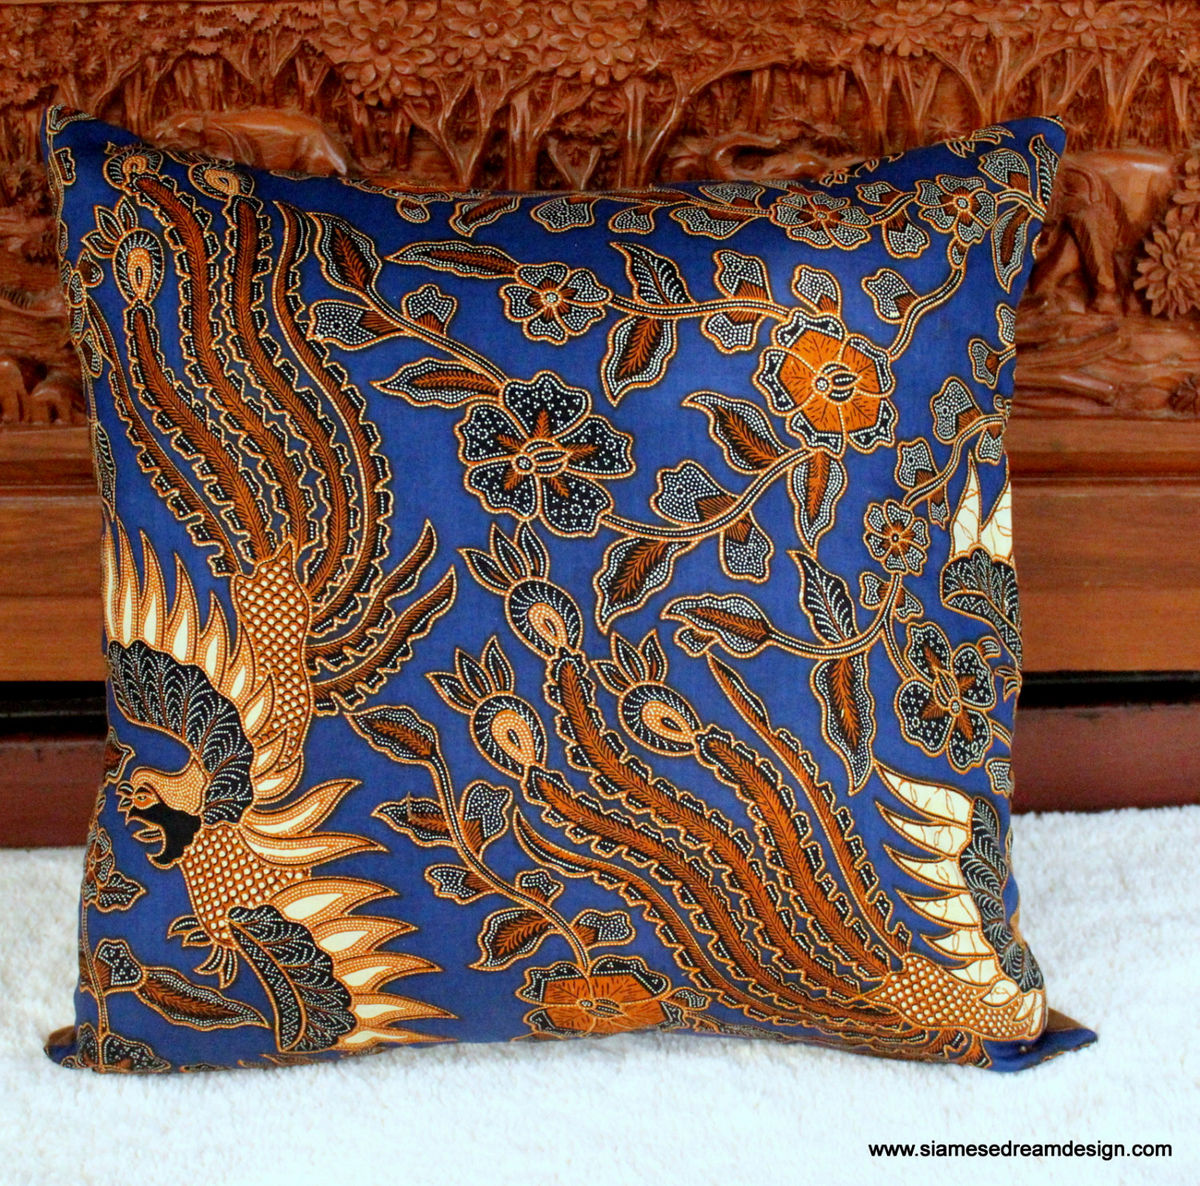 Balinese Batik Birds Pillow / Cushion Cover 16 Or 20 inch - product images  of